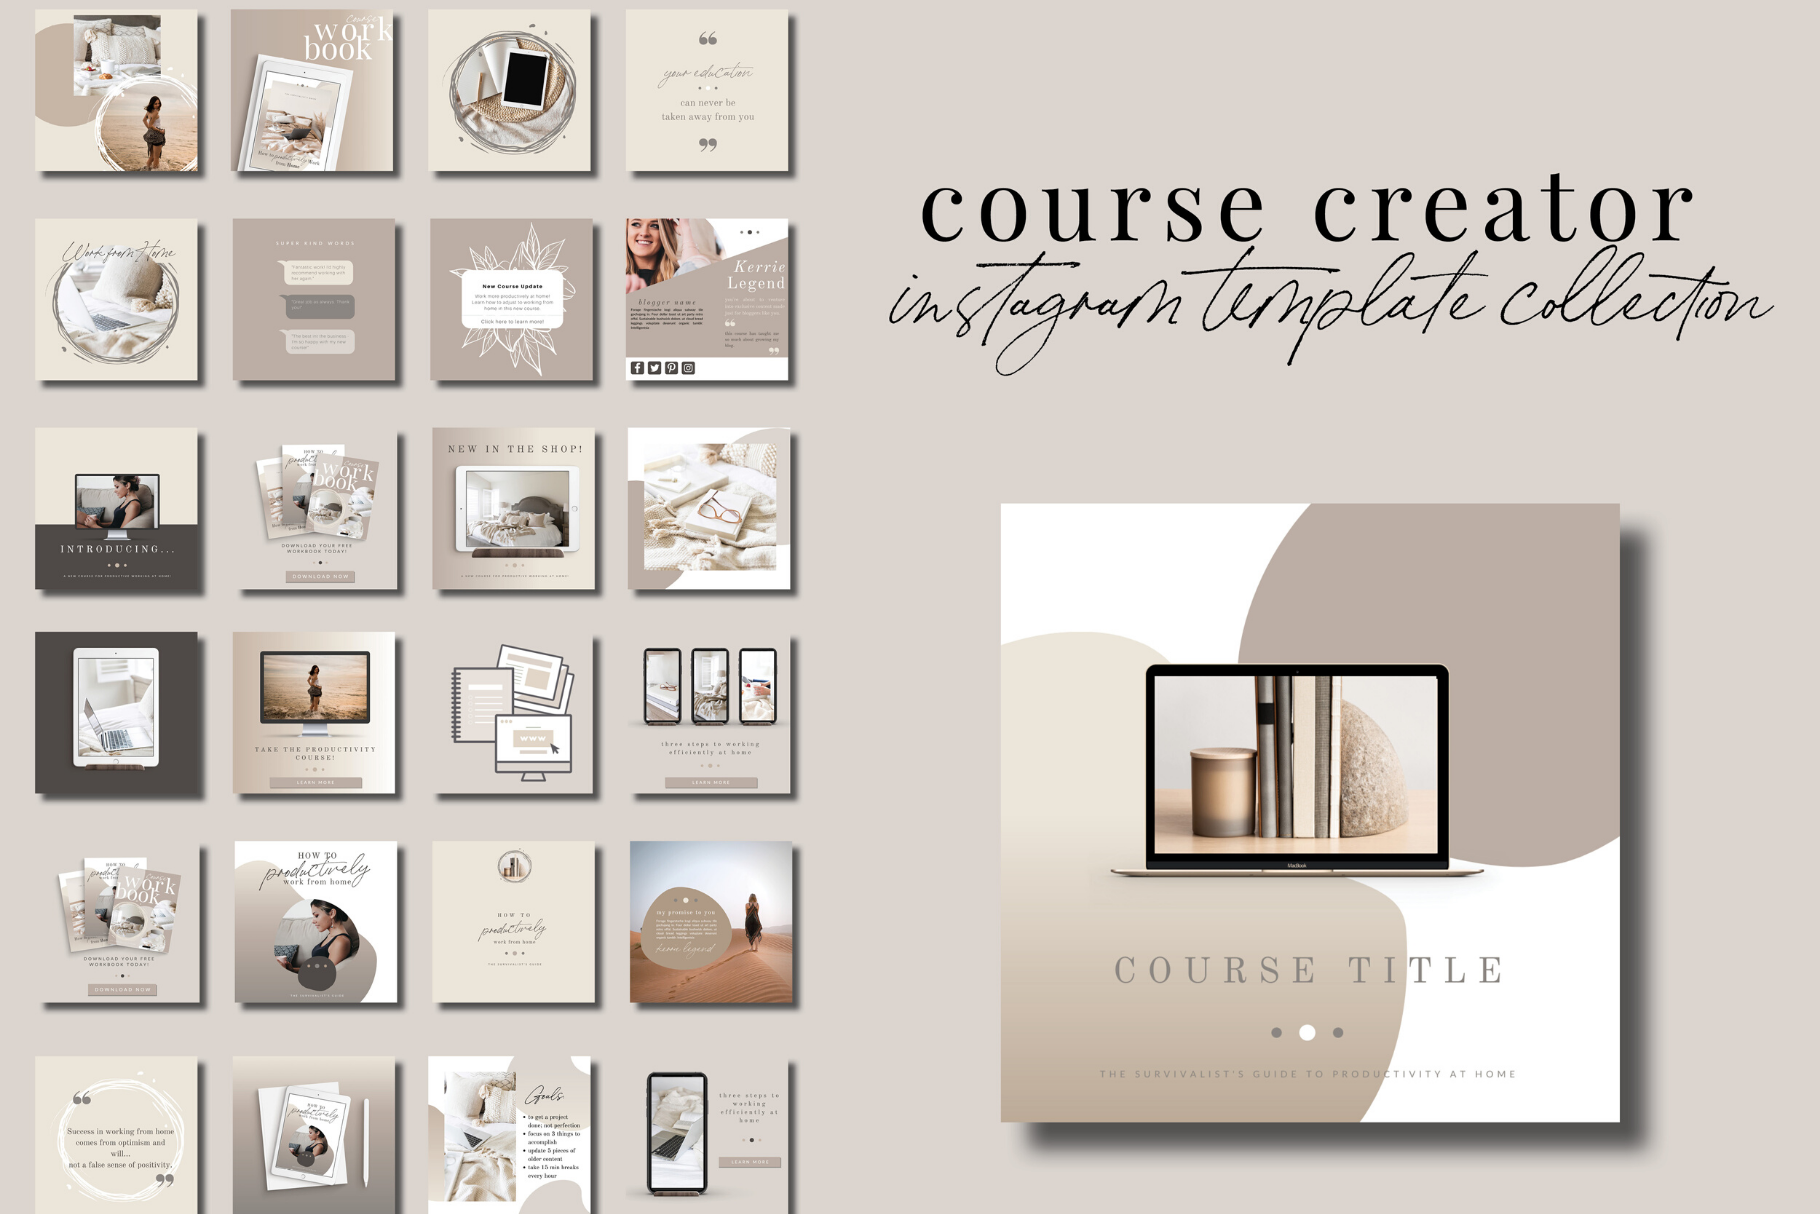 Course Creator Instagram Templates for Canva